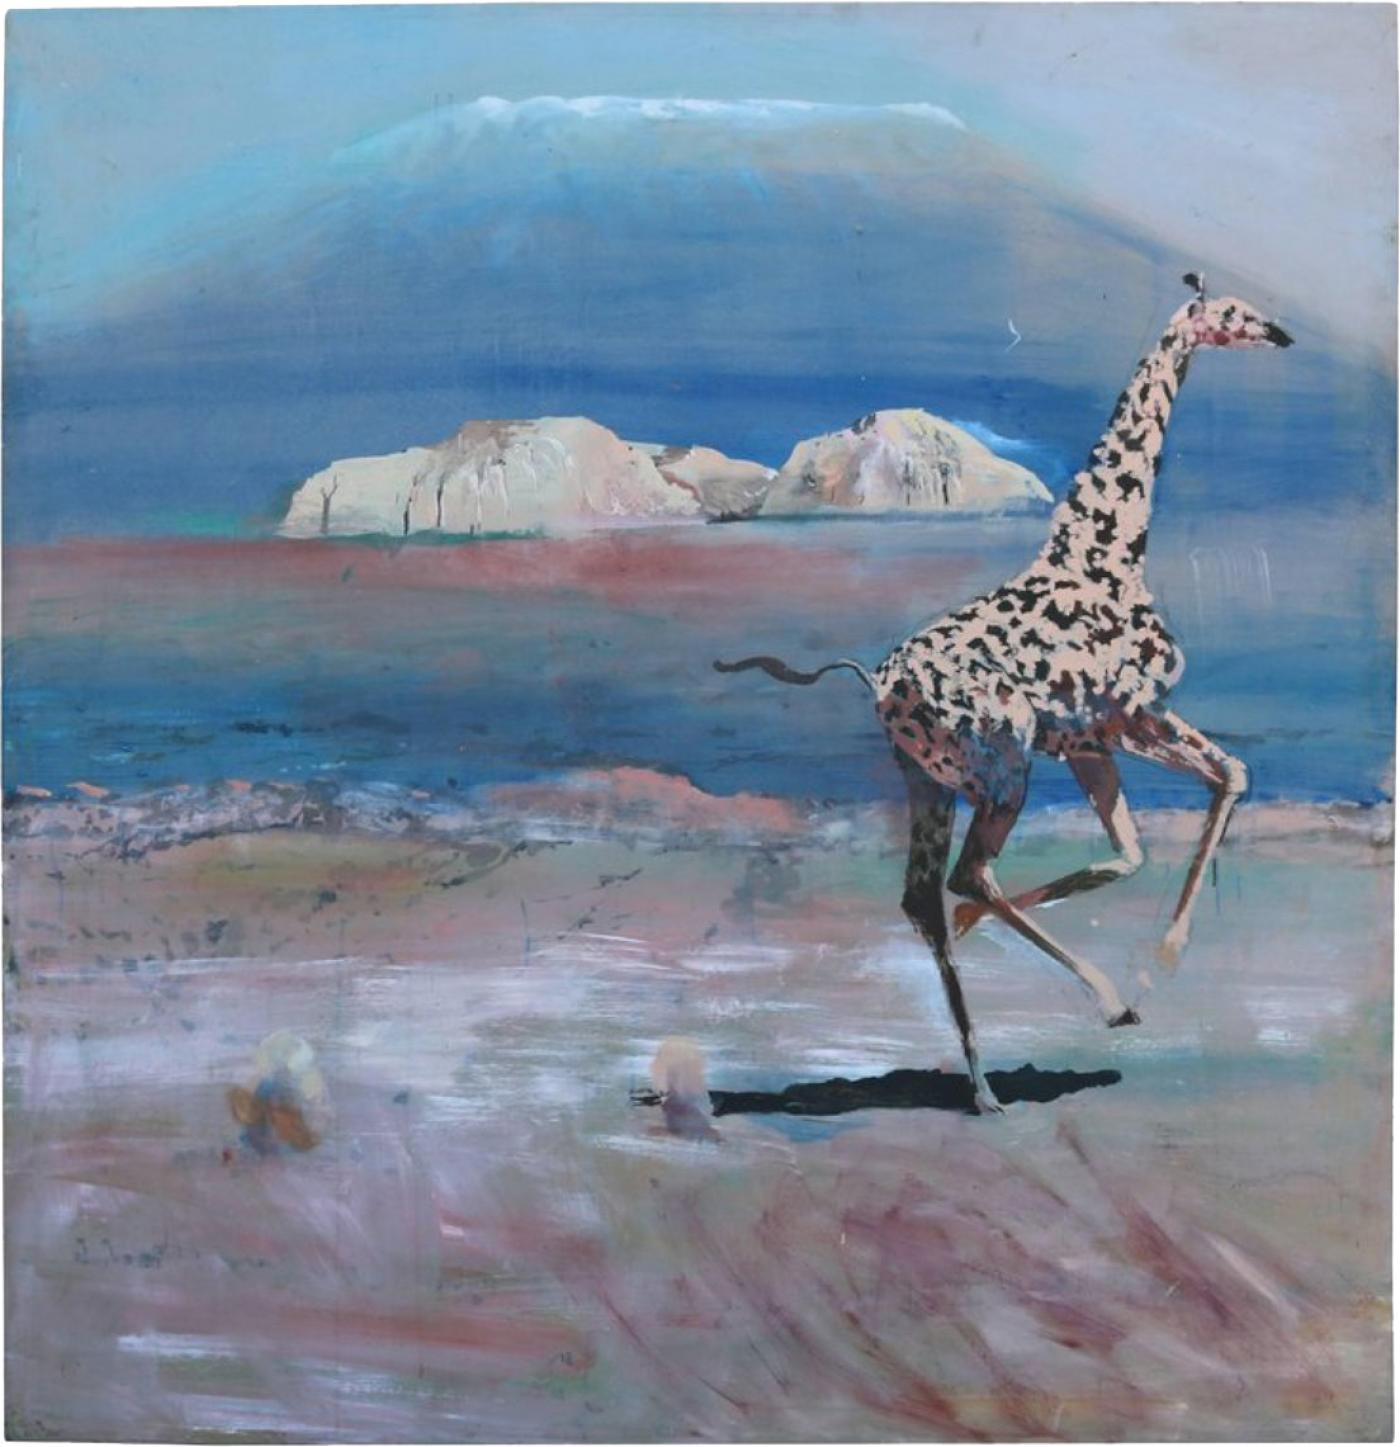 Sam Amato - Whimsical Oil Painting on Canvas of African Giraffe by ...